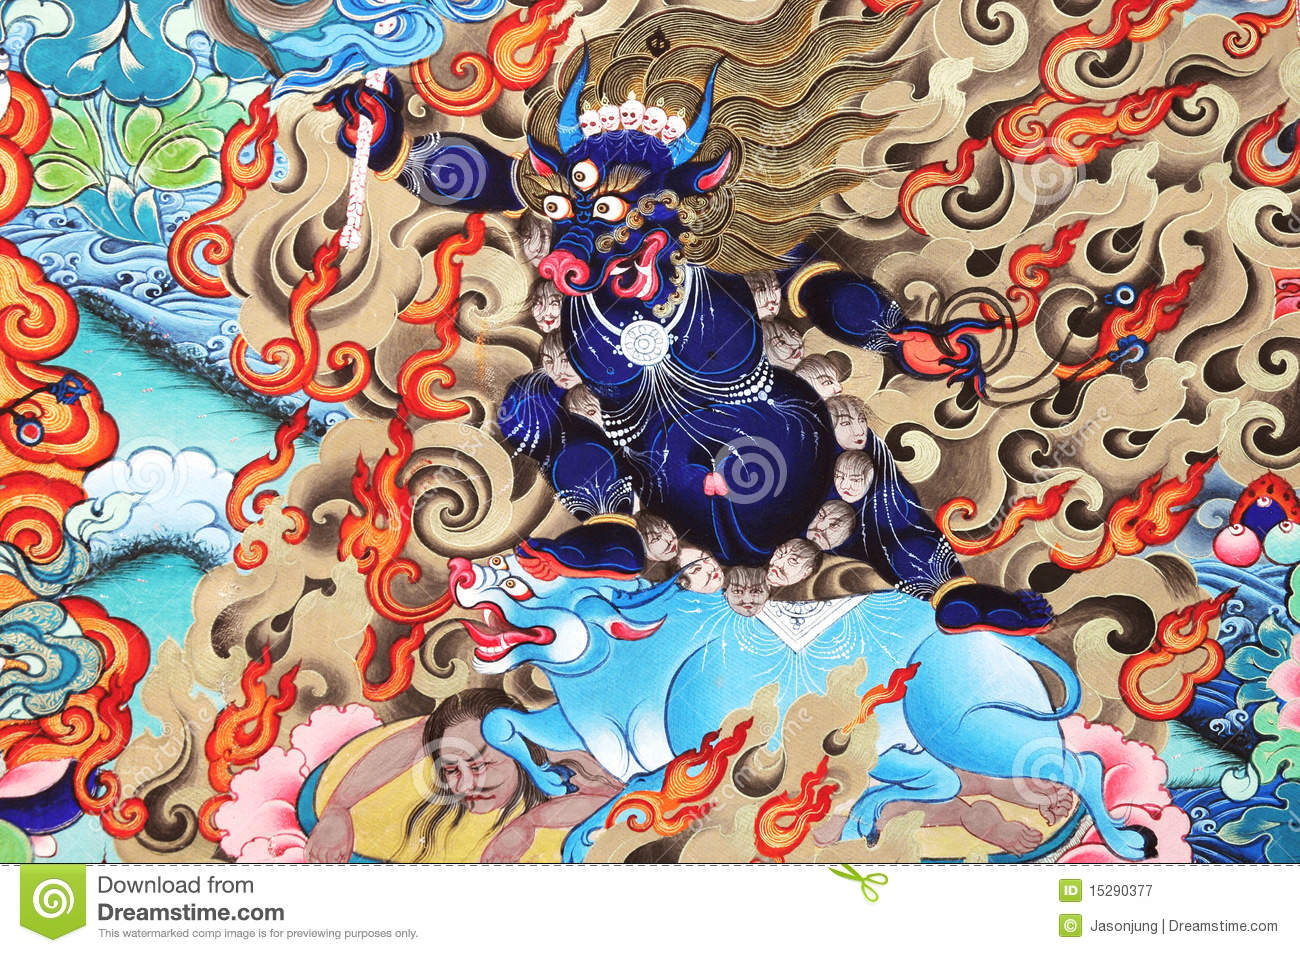 religion artwork about buddhism stock image image of monster rh dreamstime com copyright free artist images uk copyright free art posters